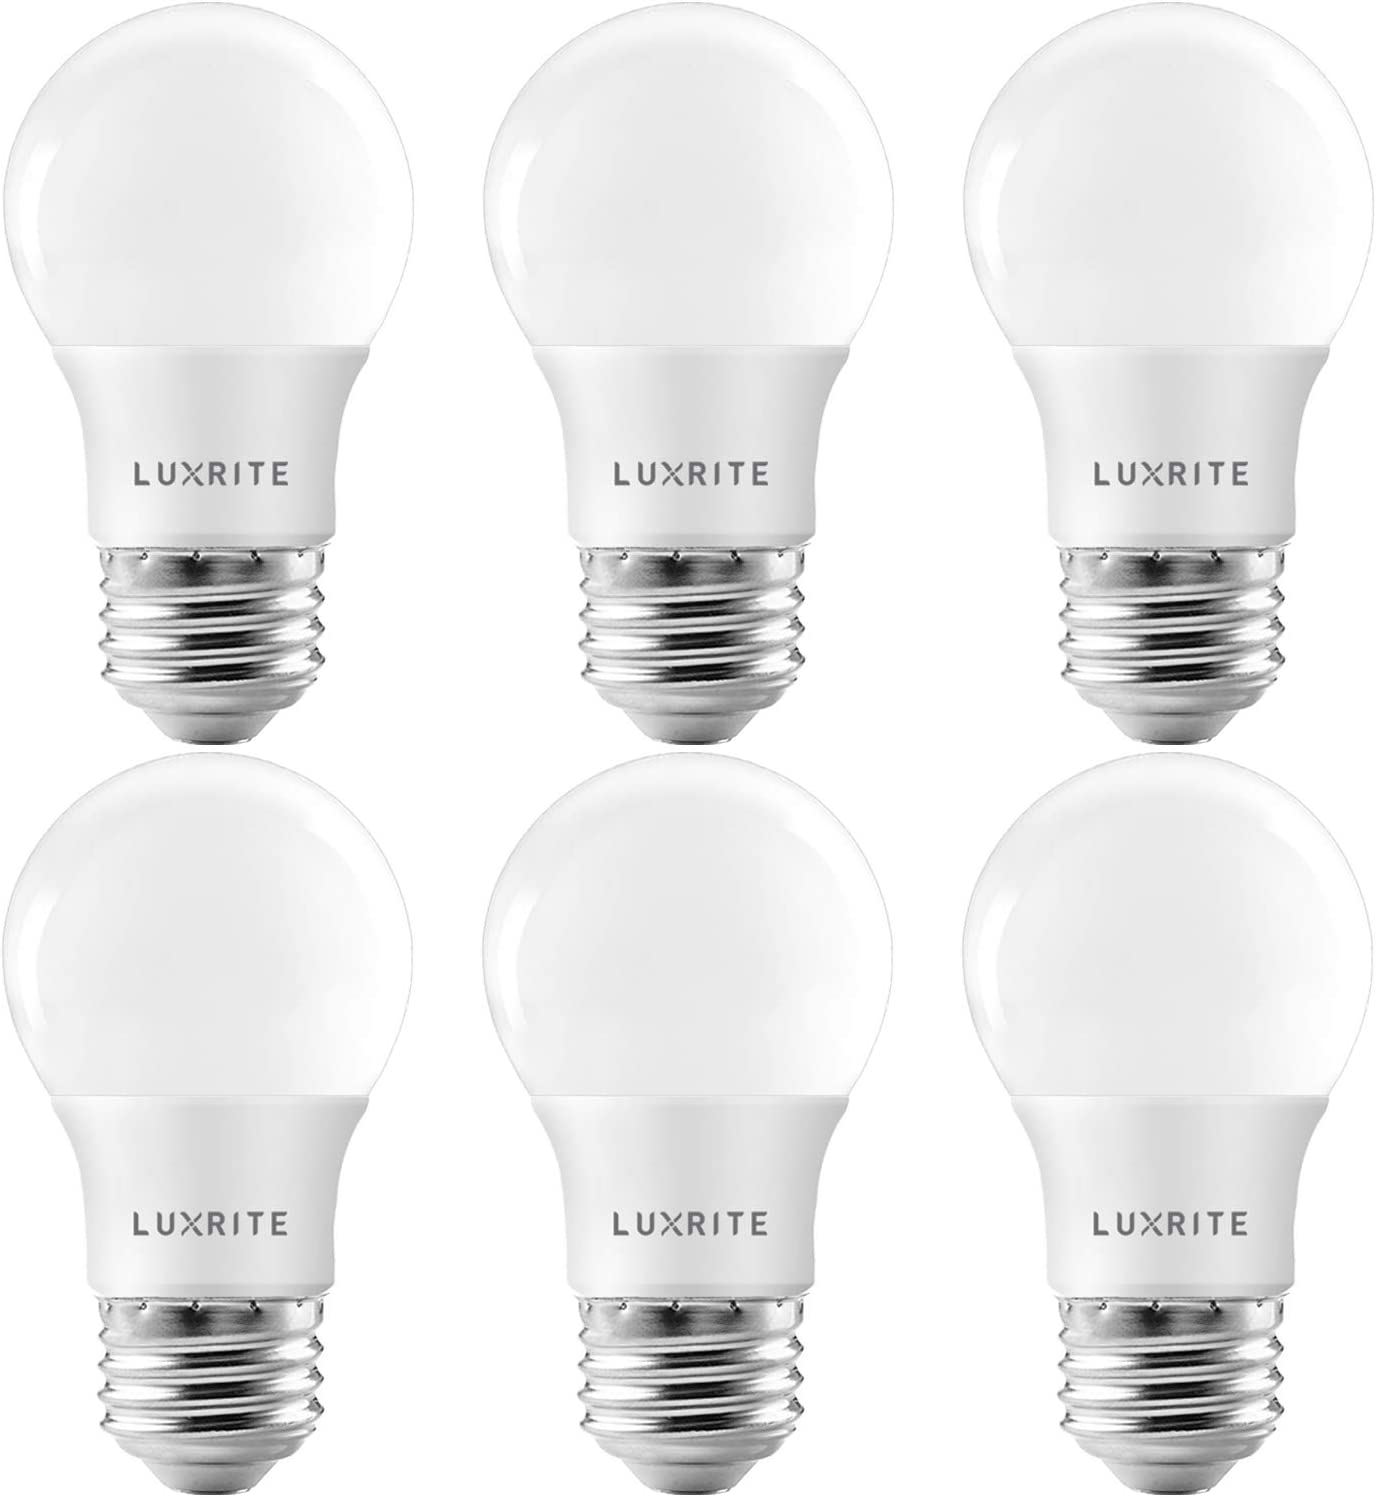 Luxrite A15 LED Bulb 40W Equivalent, 7W, 4000K (Cool White), 600 Lumens, Enclosed Fixture Rated, Dimmable Ceiling Fan Light Bulbs, E26 Medium Base, UL Listed - Indoor and Outdoor (6 Pack)